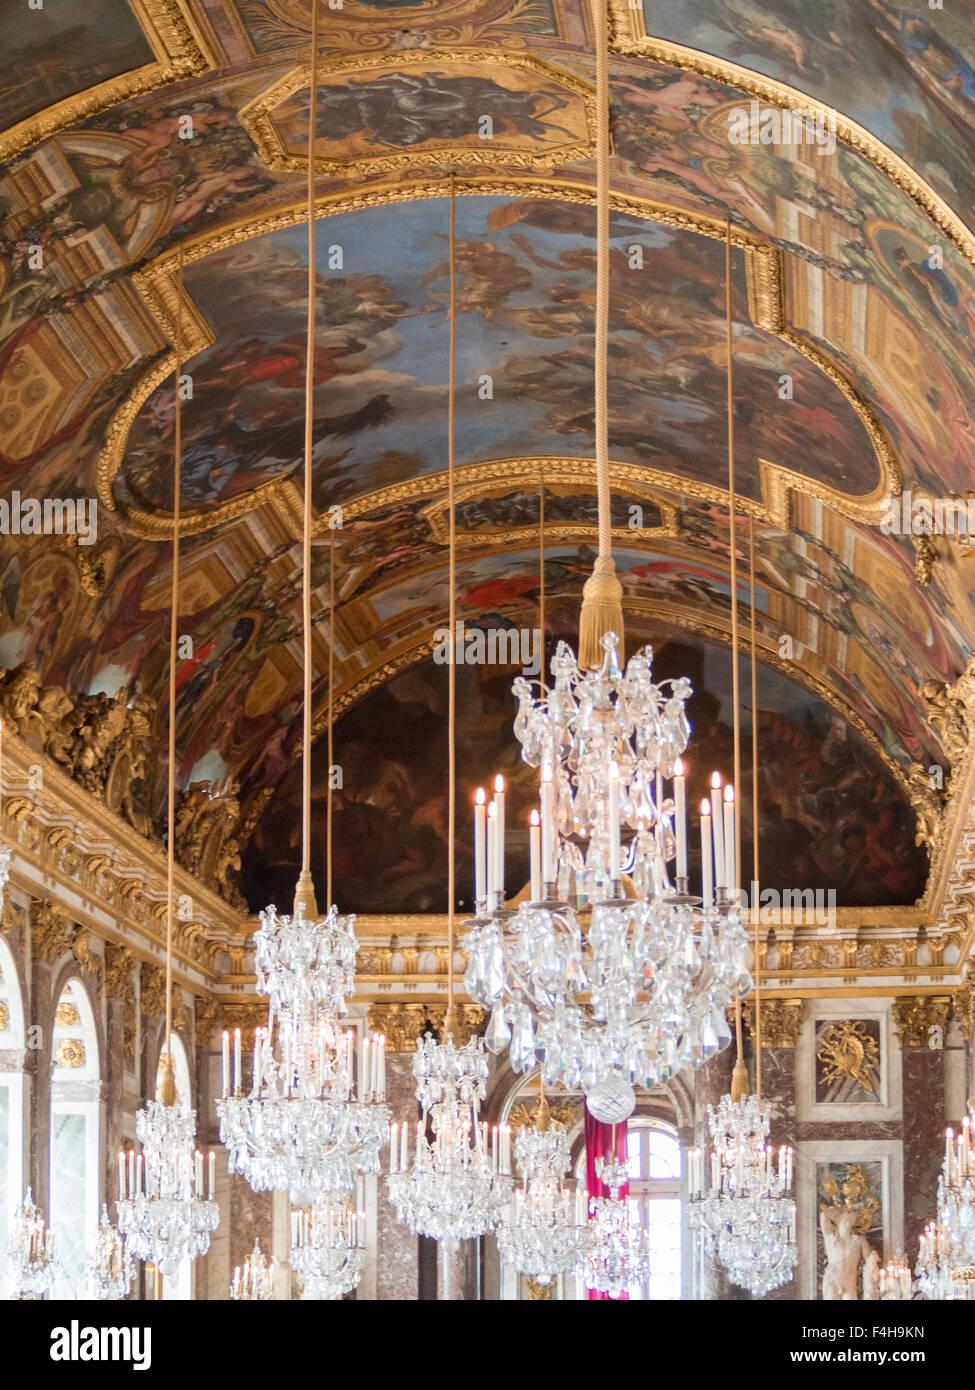 Crystal chandelier and painted ceilings of the versailles palace crystal chandelier and painted ceilings of the versailles palace mirror room aloadofball Gallery